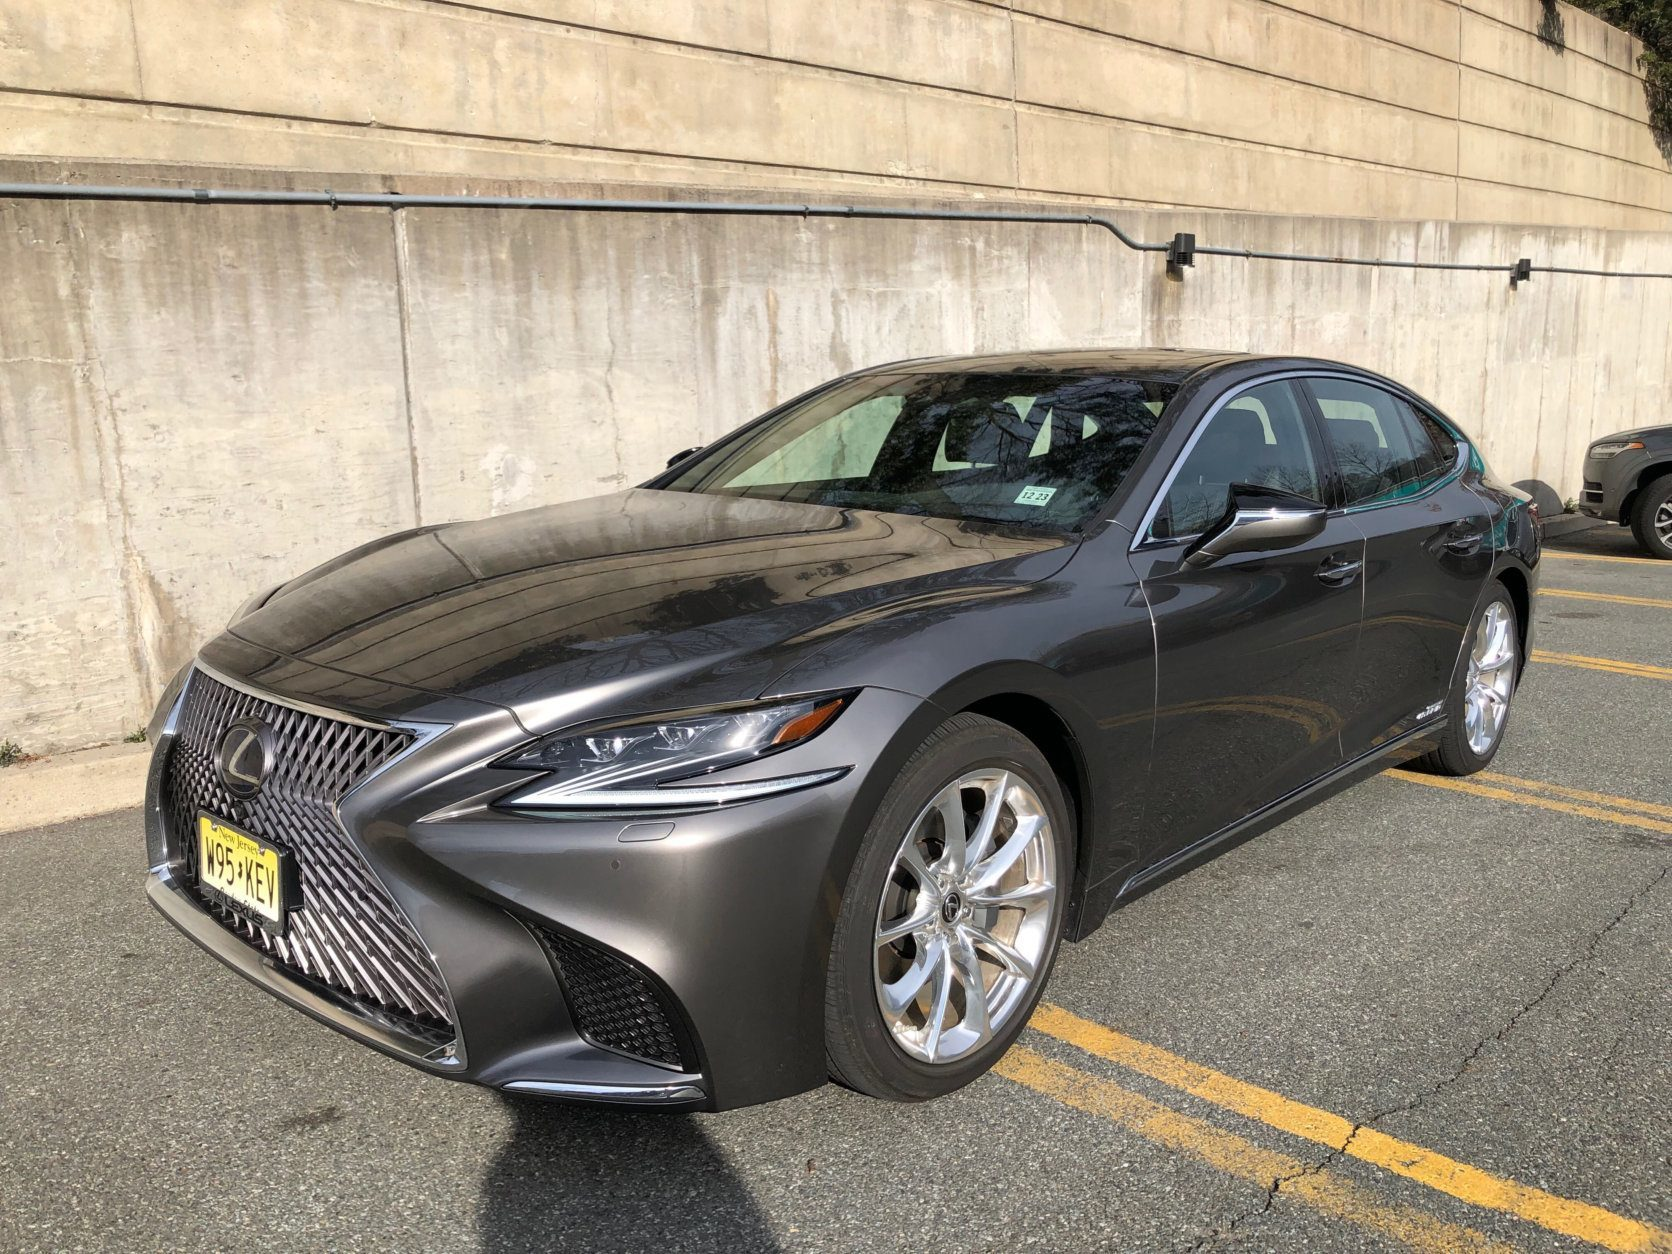 The LS 500h, the hybrid version of Lexus' big luxury sedan, boasts one of the most opulent interiors available in a car today. (WTOP/John Aaron)